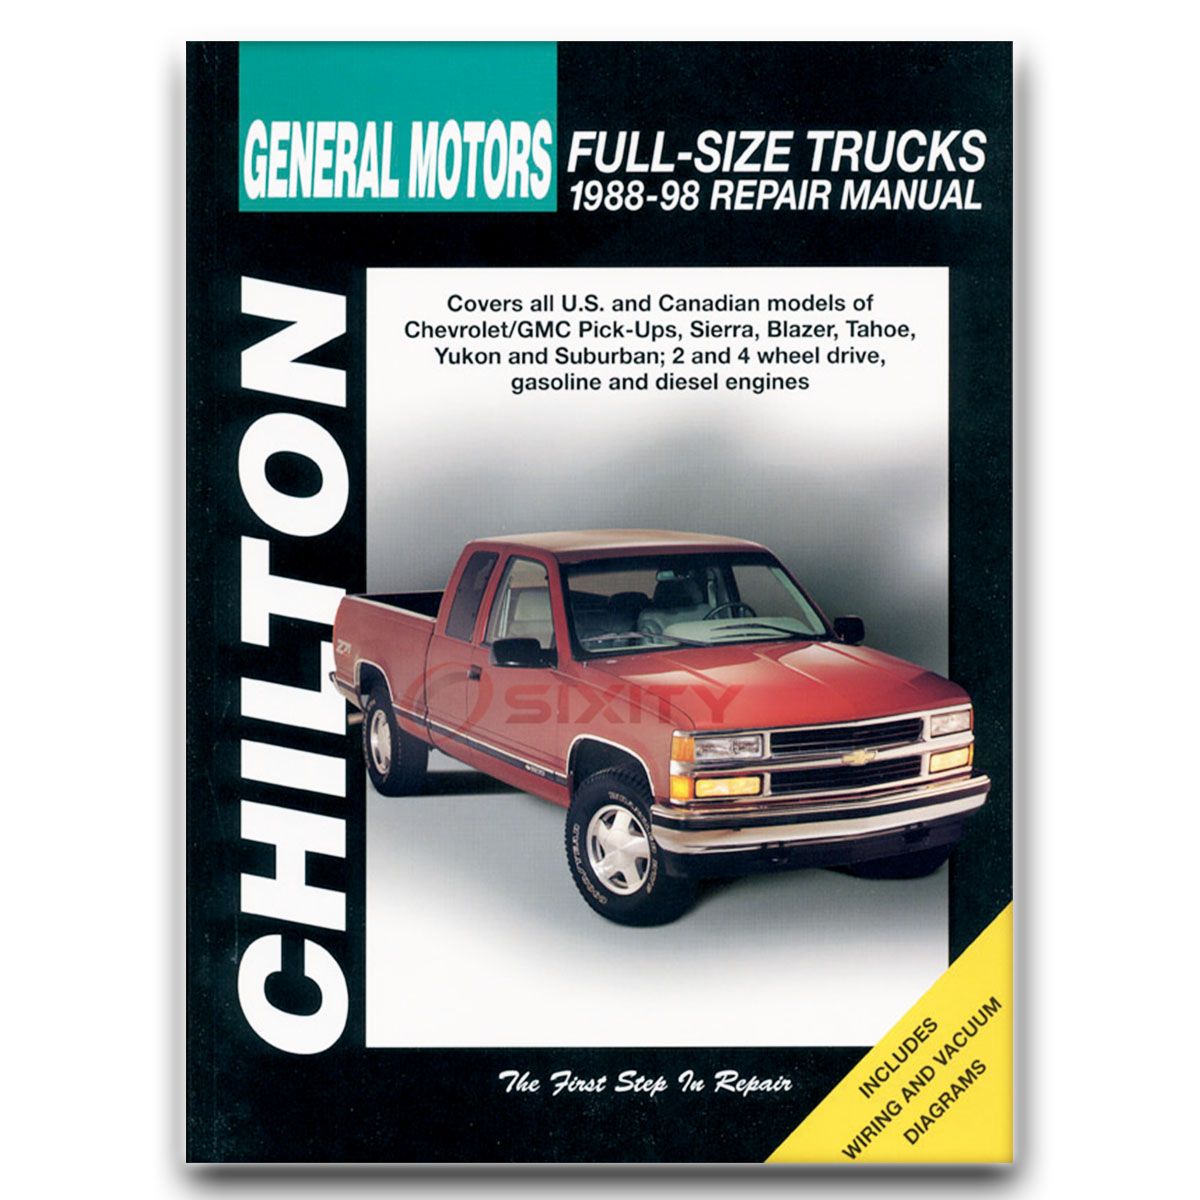 Chevy K2500 Suburban Chilton Repair Manual LS LT Base Silverado Shop Service  gw